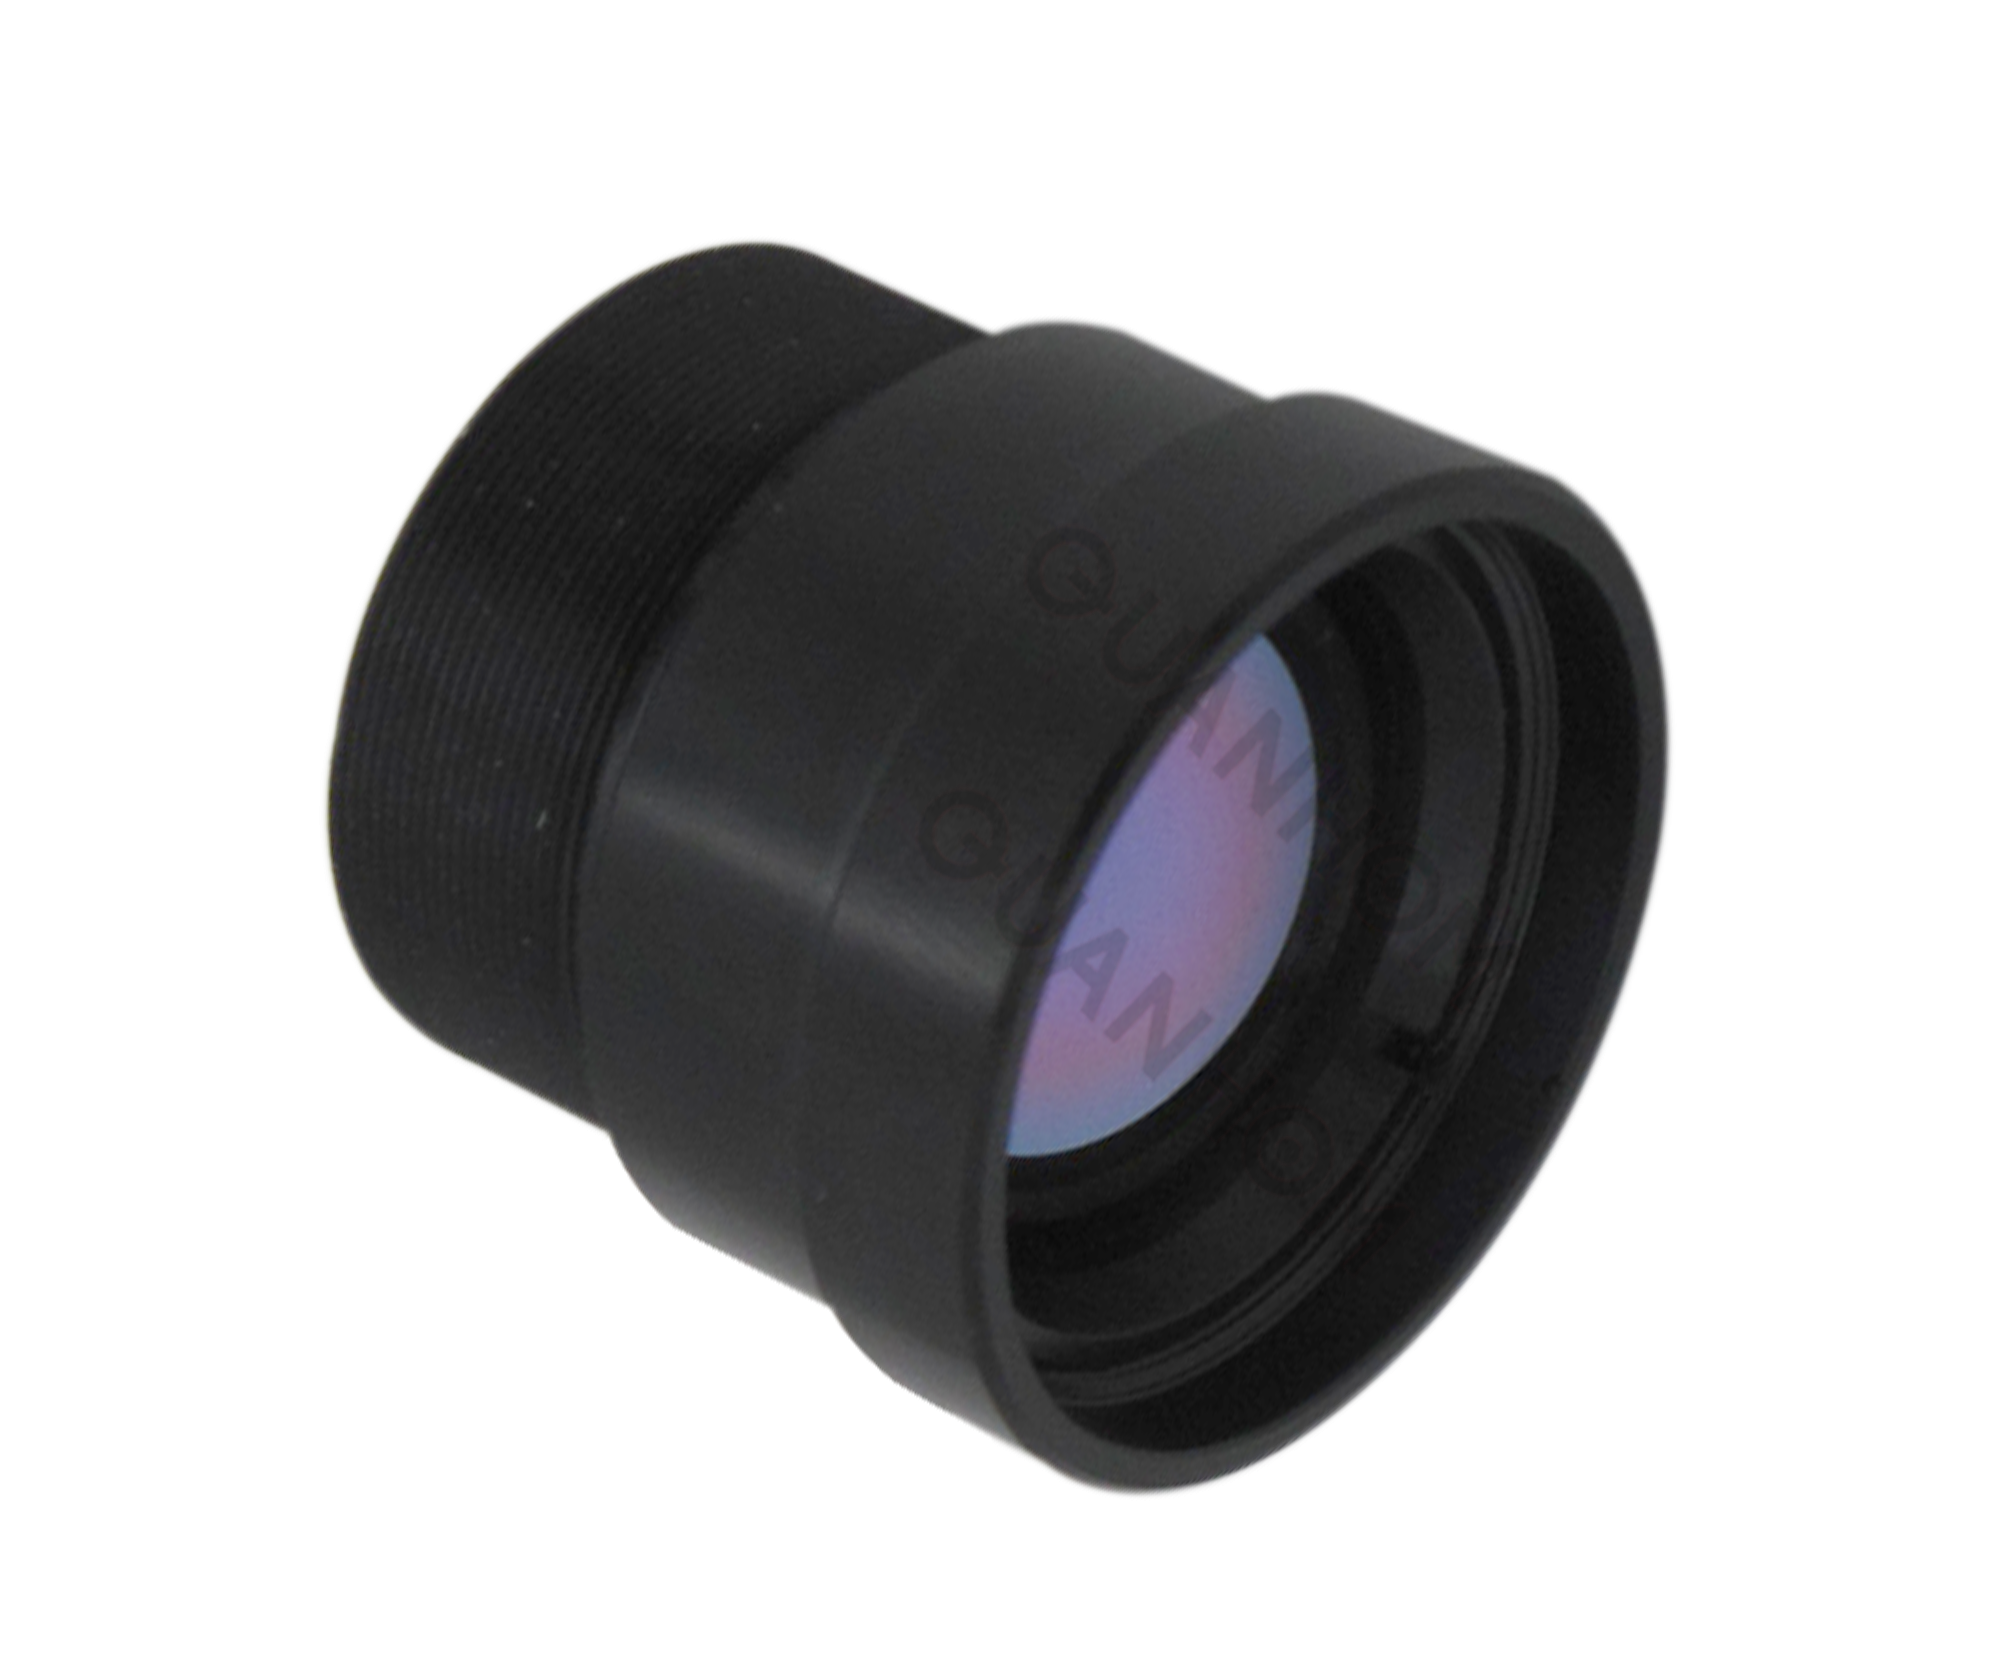 Athermalized Lens - GLA1910WA